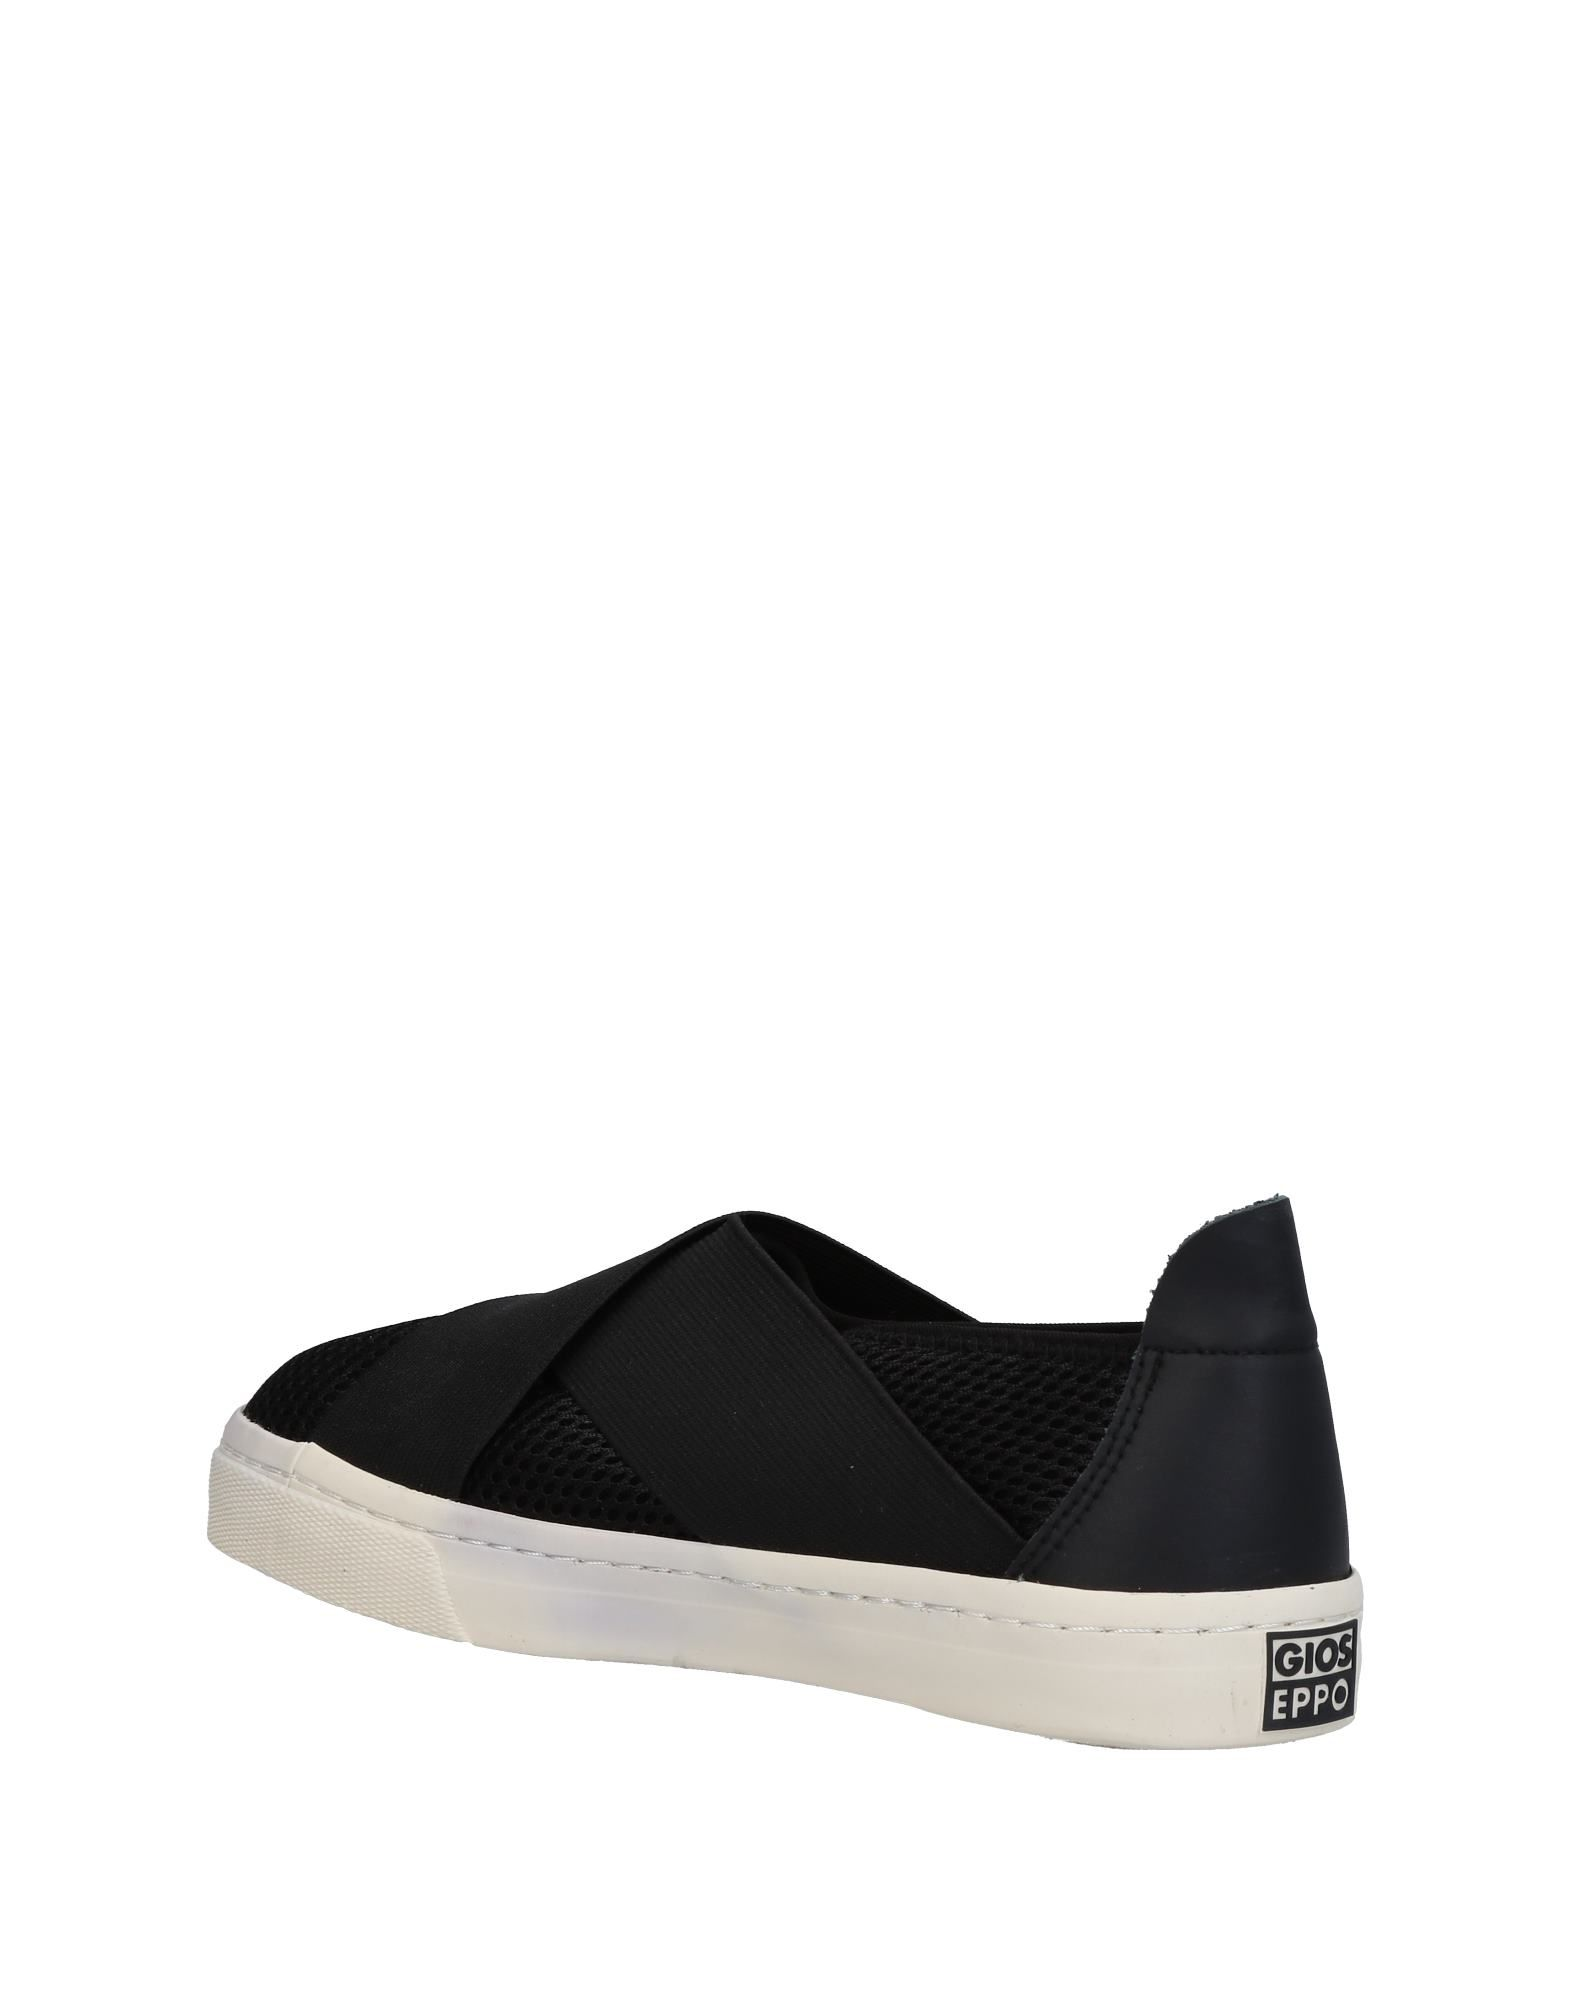 ... Sneakers Gioseppo Femme - Sneakers Gioseppo sur ...